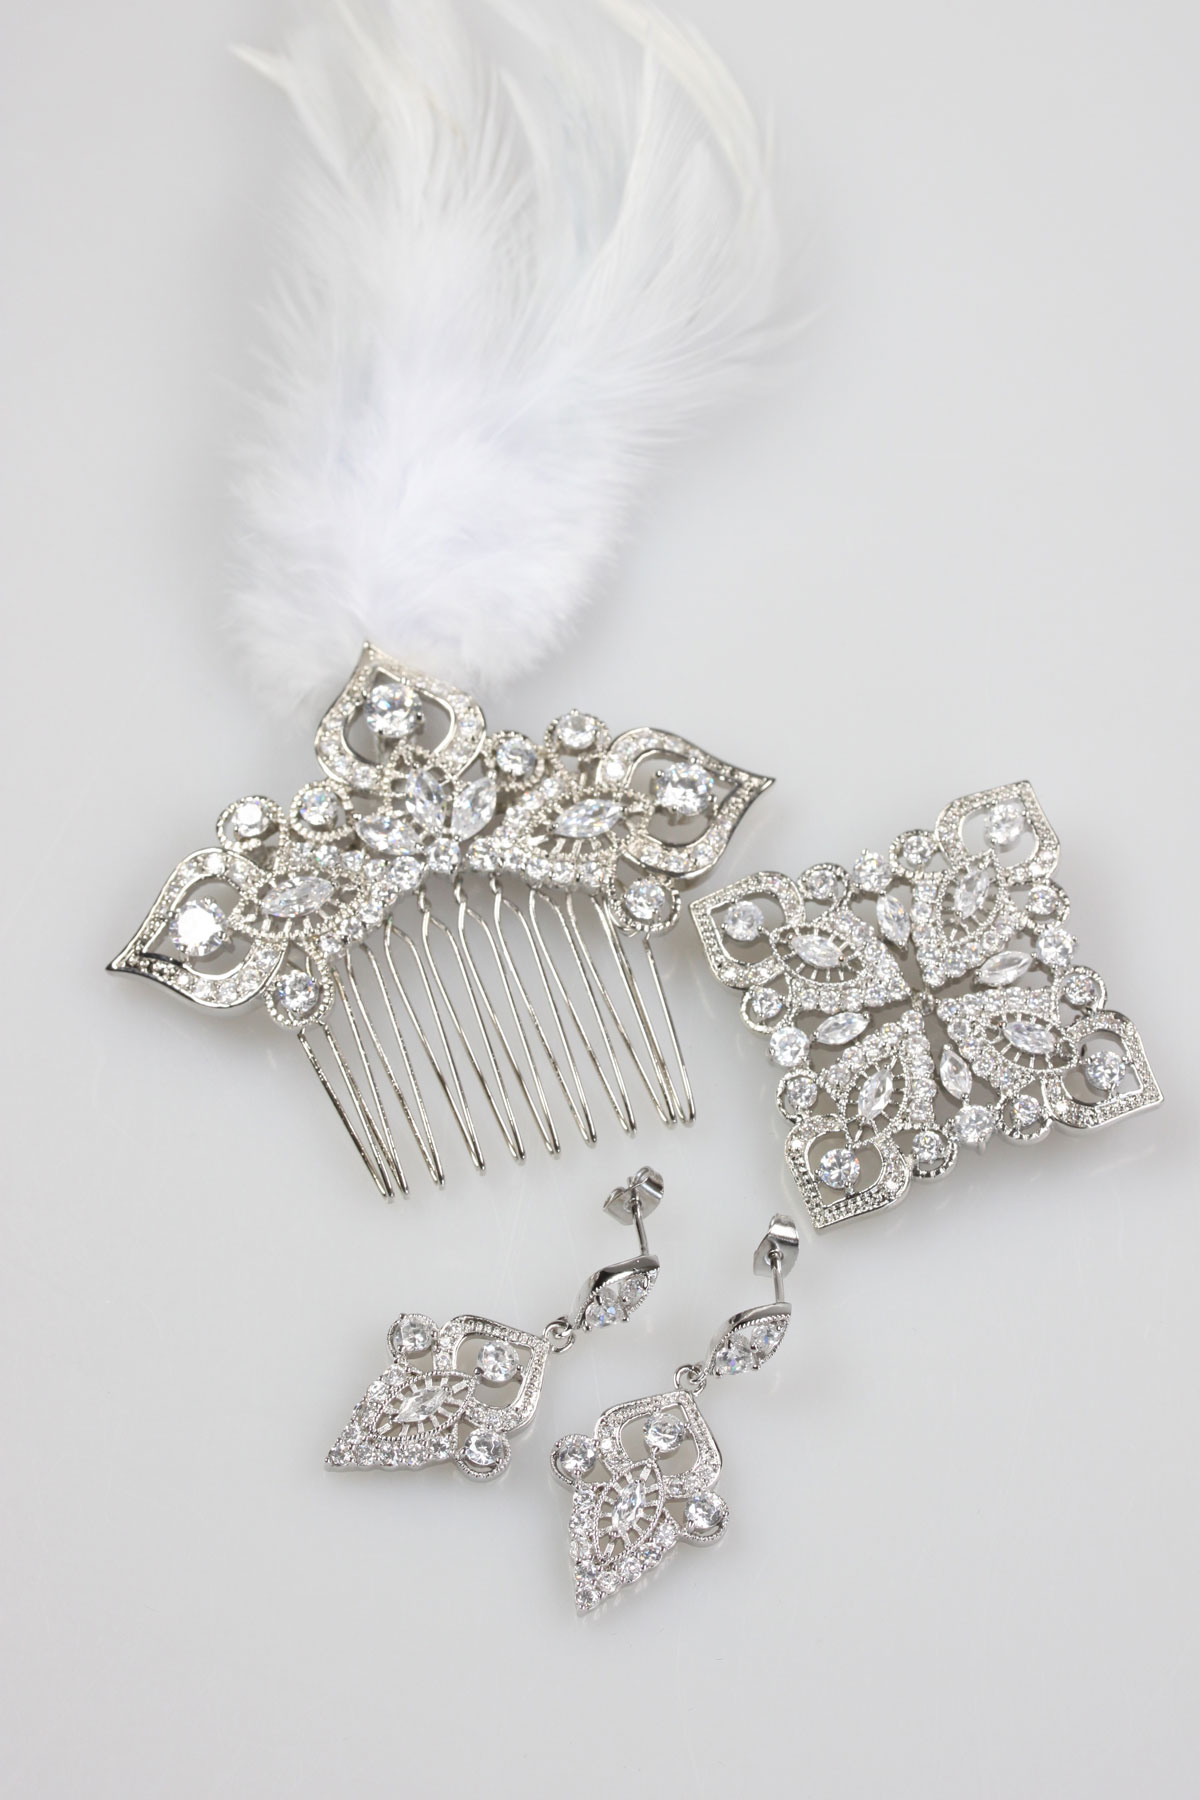 taj set hair comb, earrings, brooch